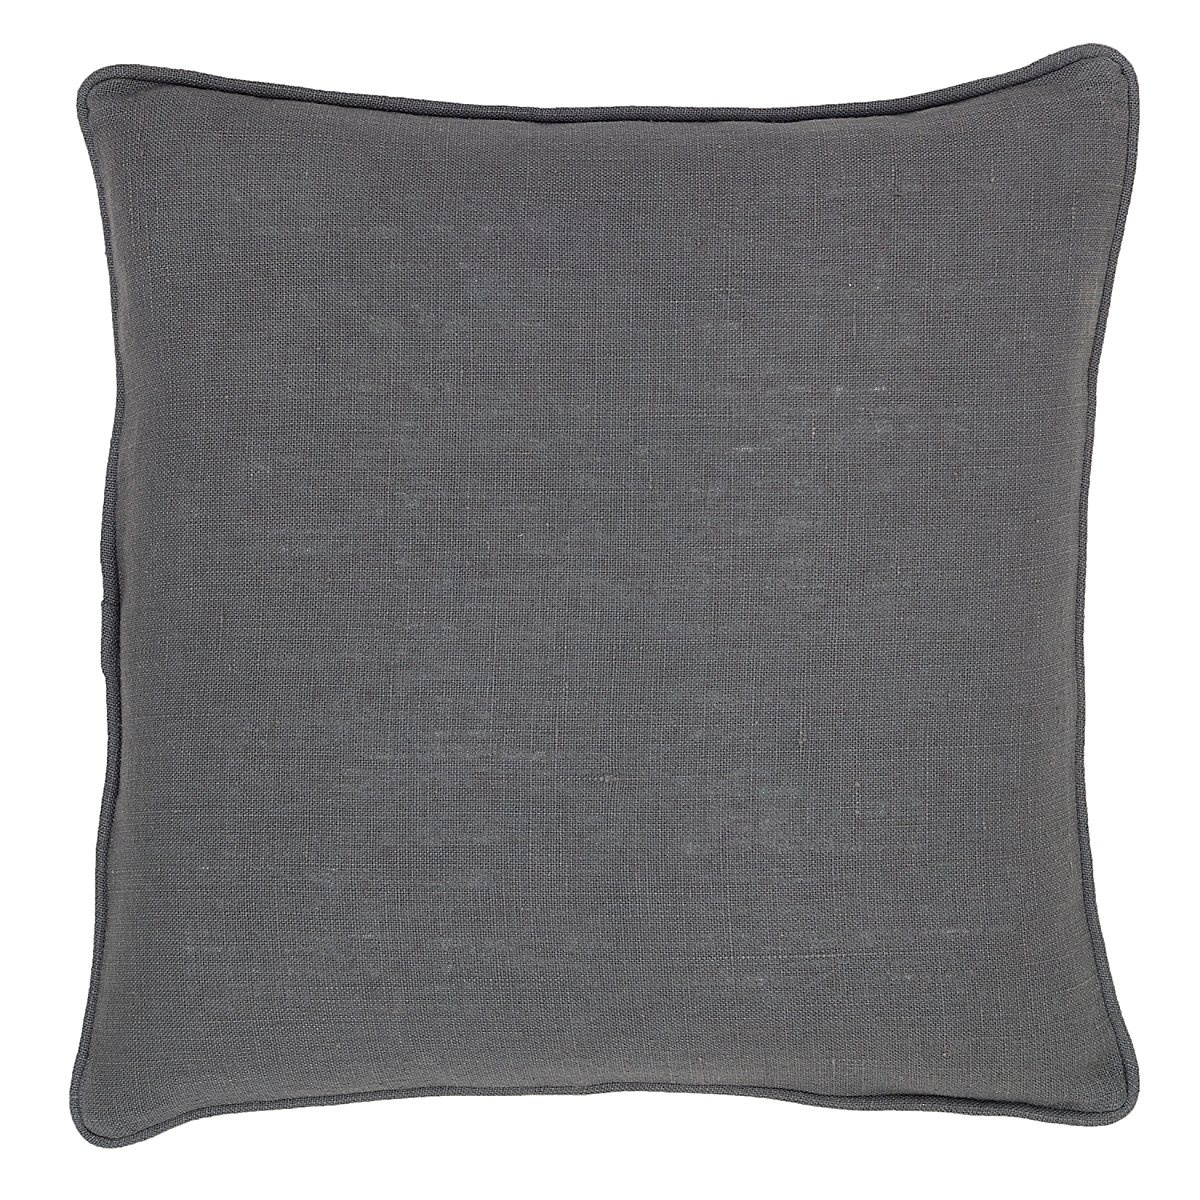 Stone Washed Linen Shale Decorative Pillow